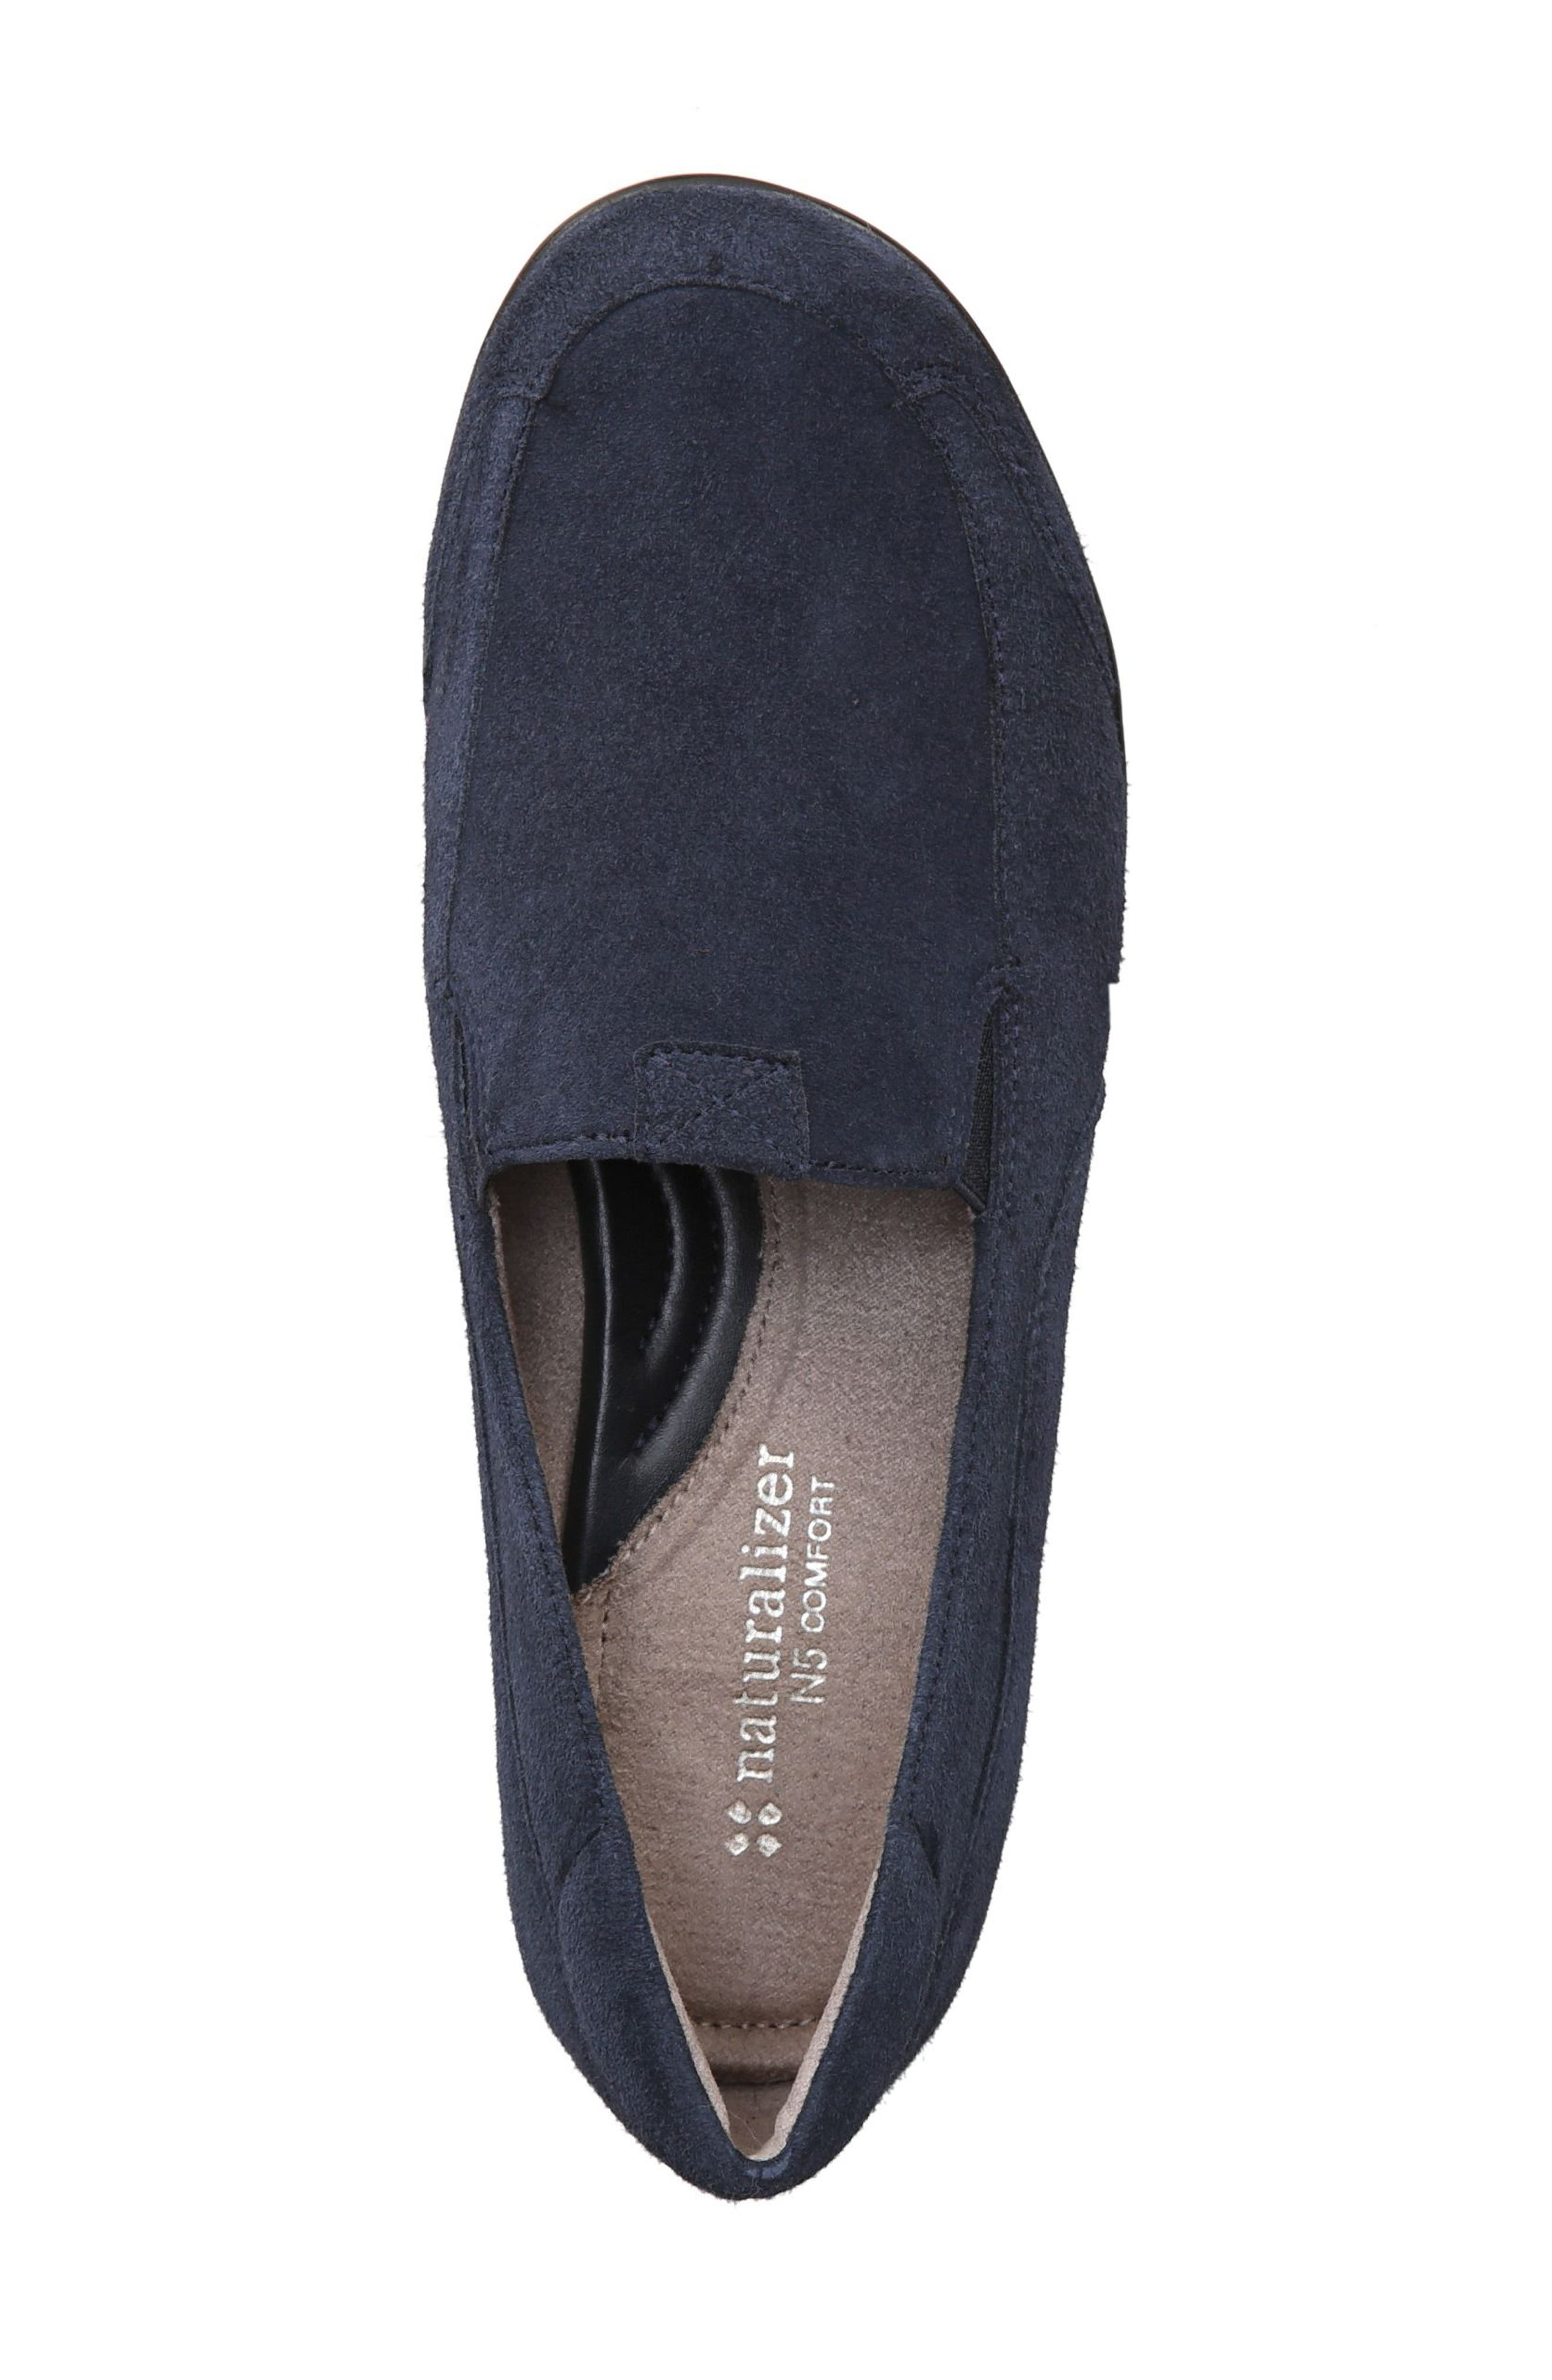 'Channing' Loafer,                             Alternate thumbnail 5, color,                             Navy Suede